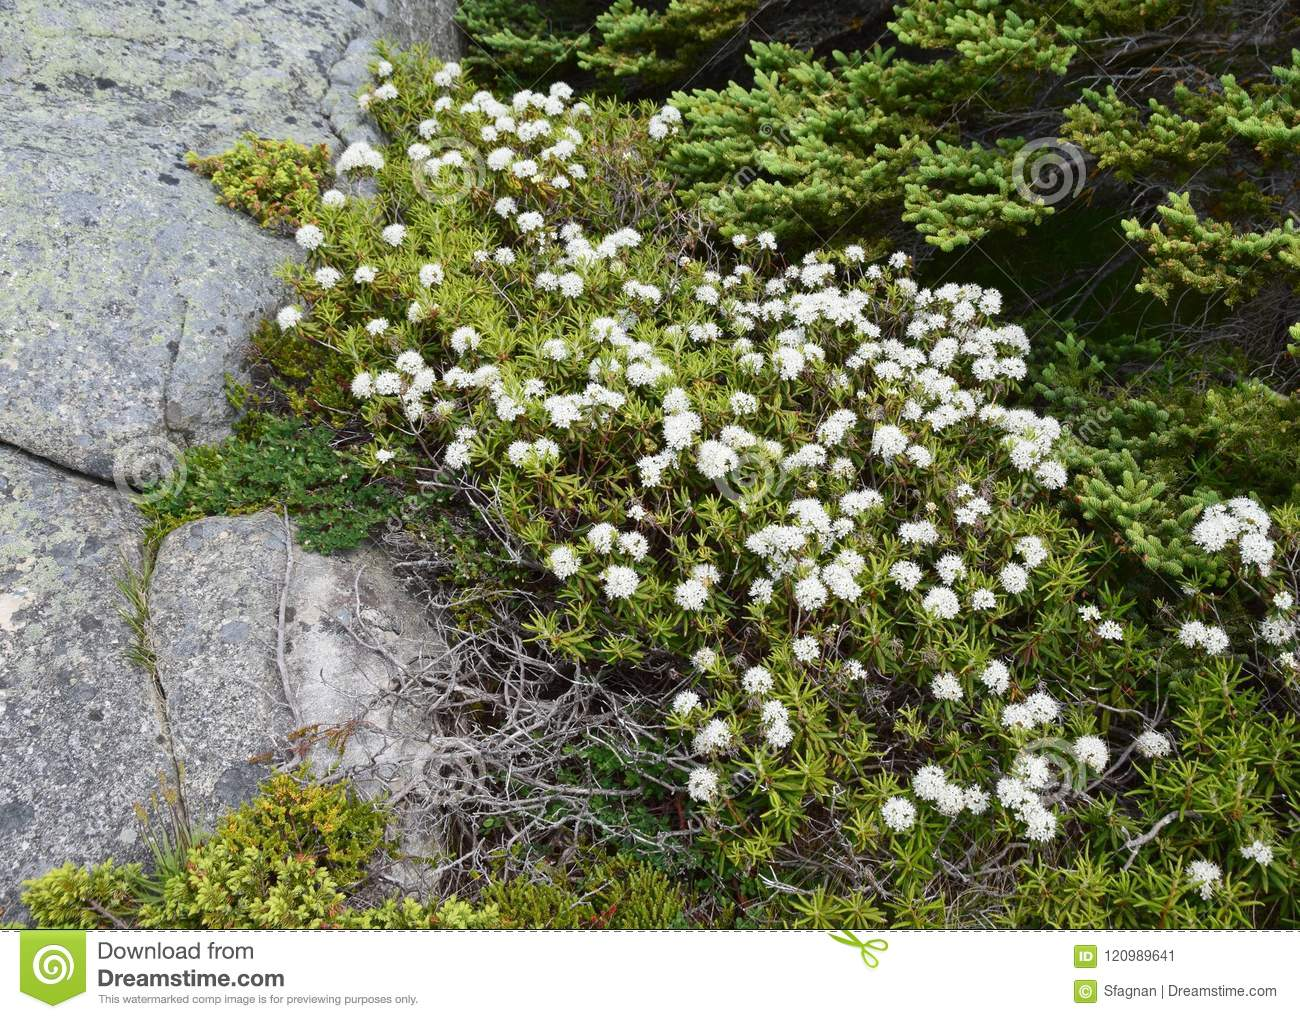 Labrador Tea Plant With White Clustered Flowers Stock Image Image